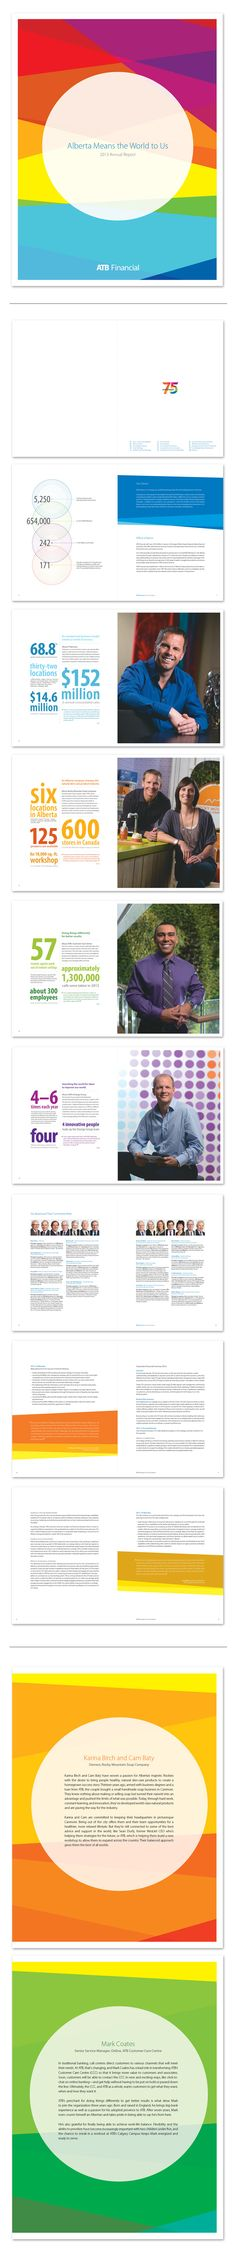 ATB Financial 2013 Annual Report Kelly Nyvoll  The concept and design was created to play off of the vibrancy of ATB Financial's 75th anniversary logo. The goal was to create a report that had a unique and 'unexpected' look for a financial institution.